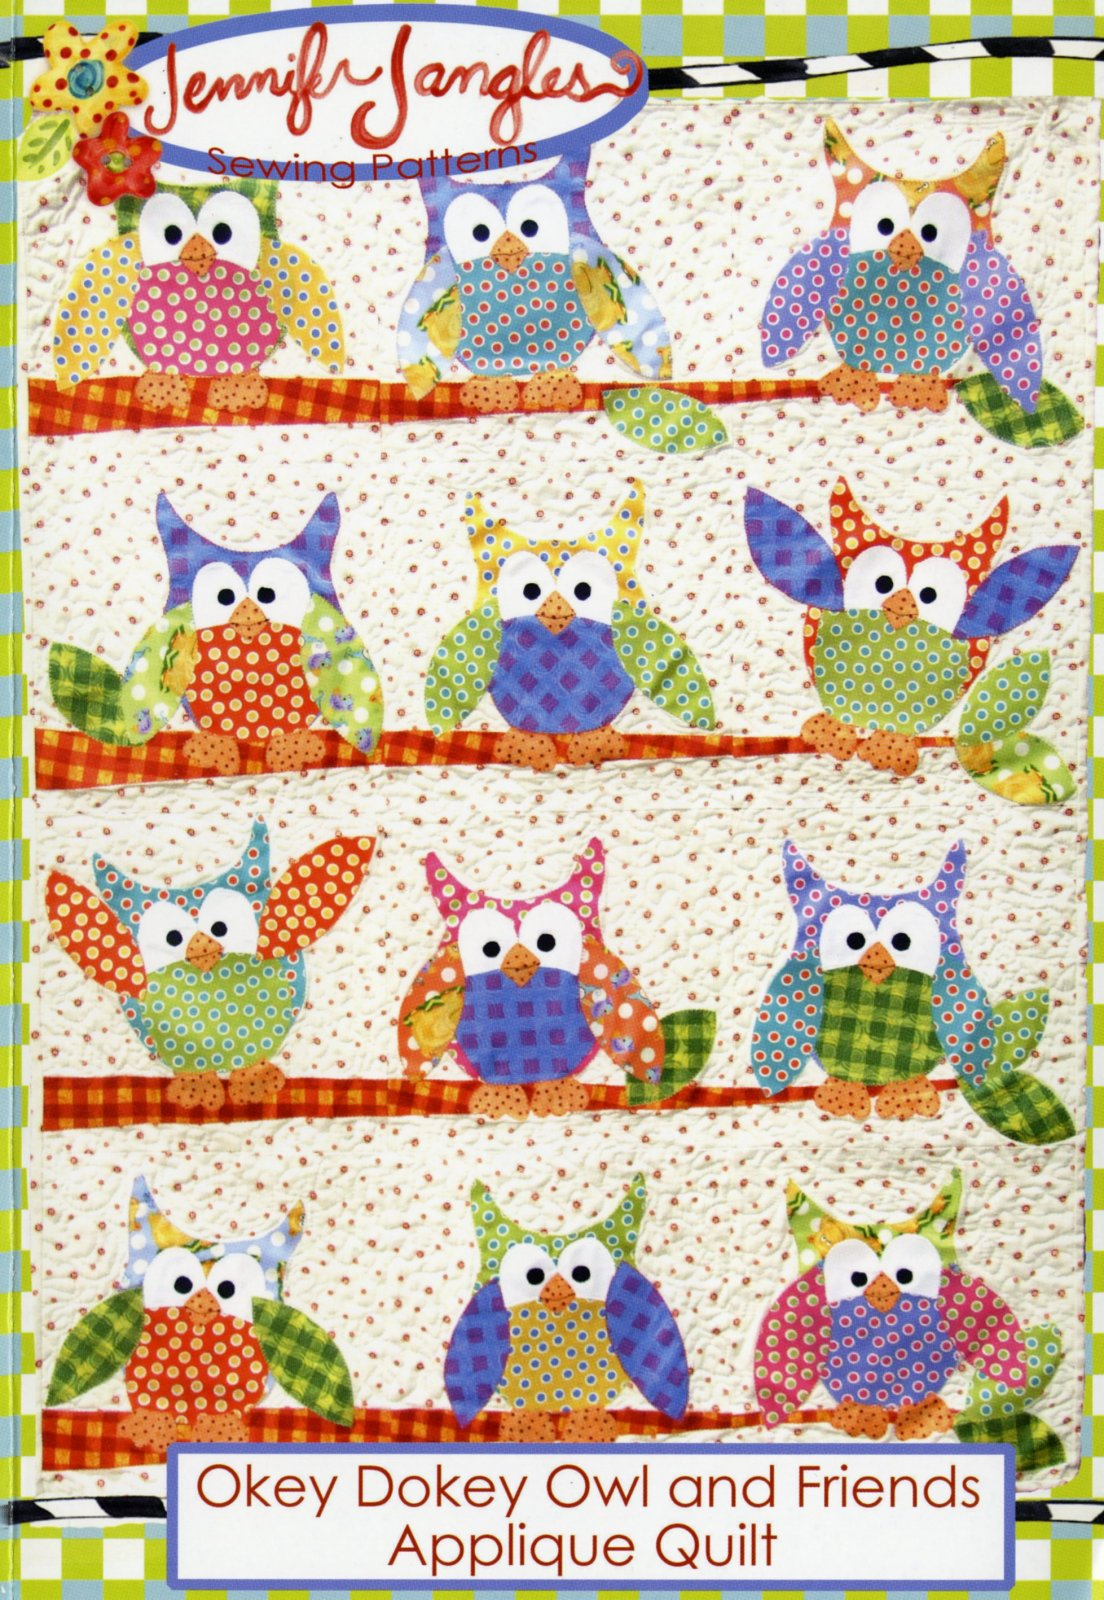 Okey Dokey Owl and Friends Applique Quilt